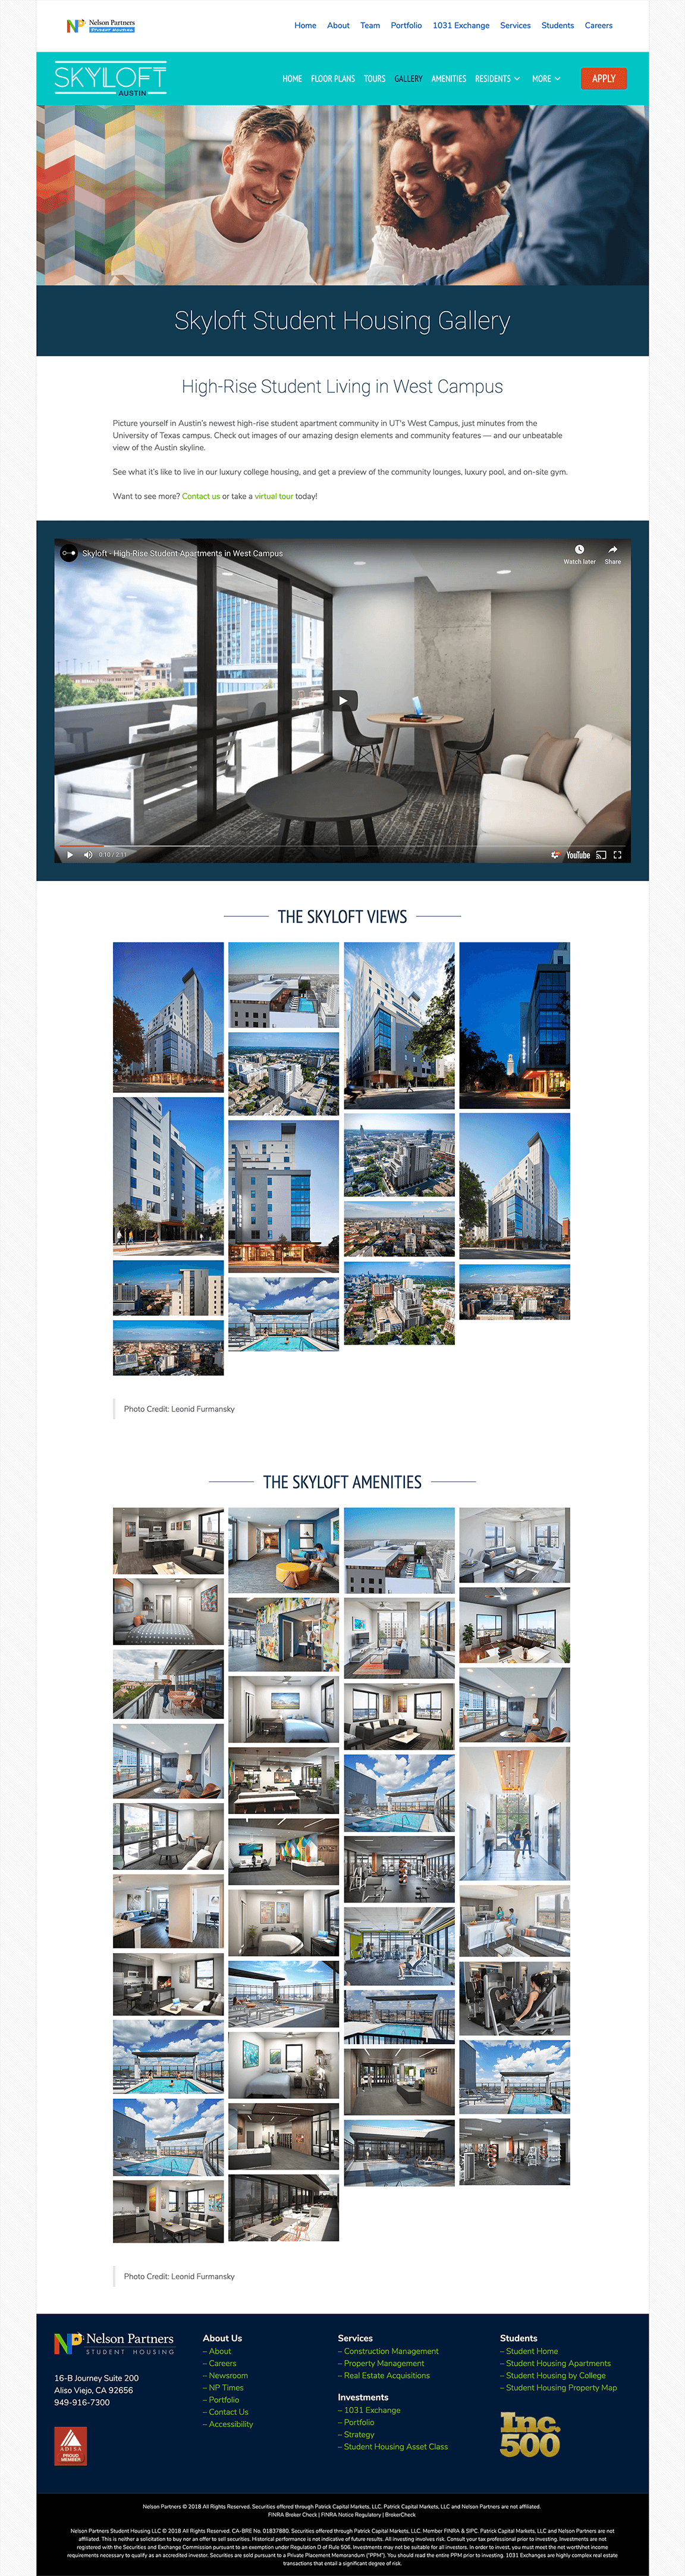 Skyloft-Student-Housing-Apartments-Website-Design-Gallery-Page